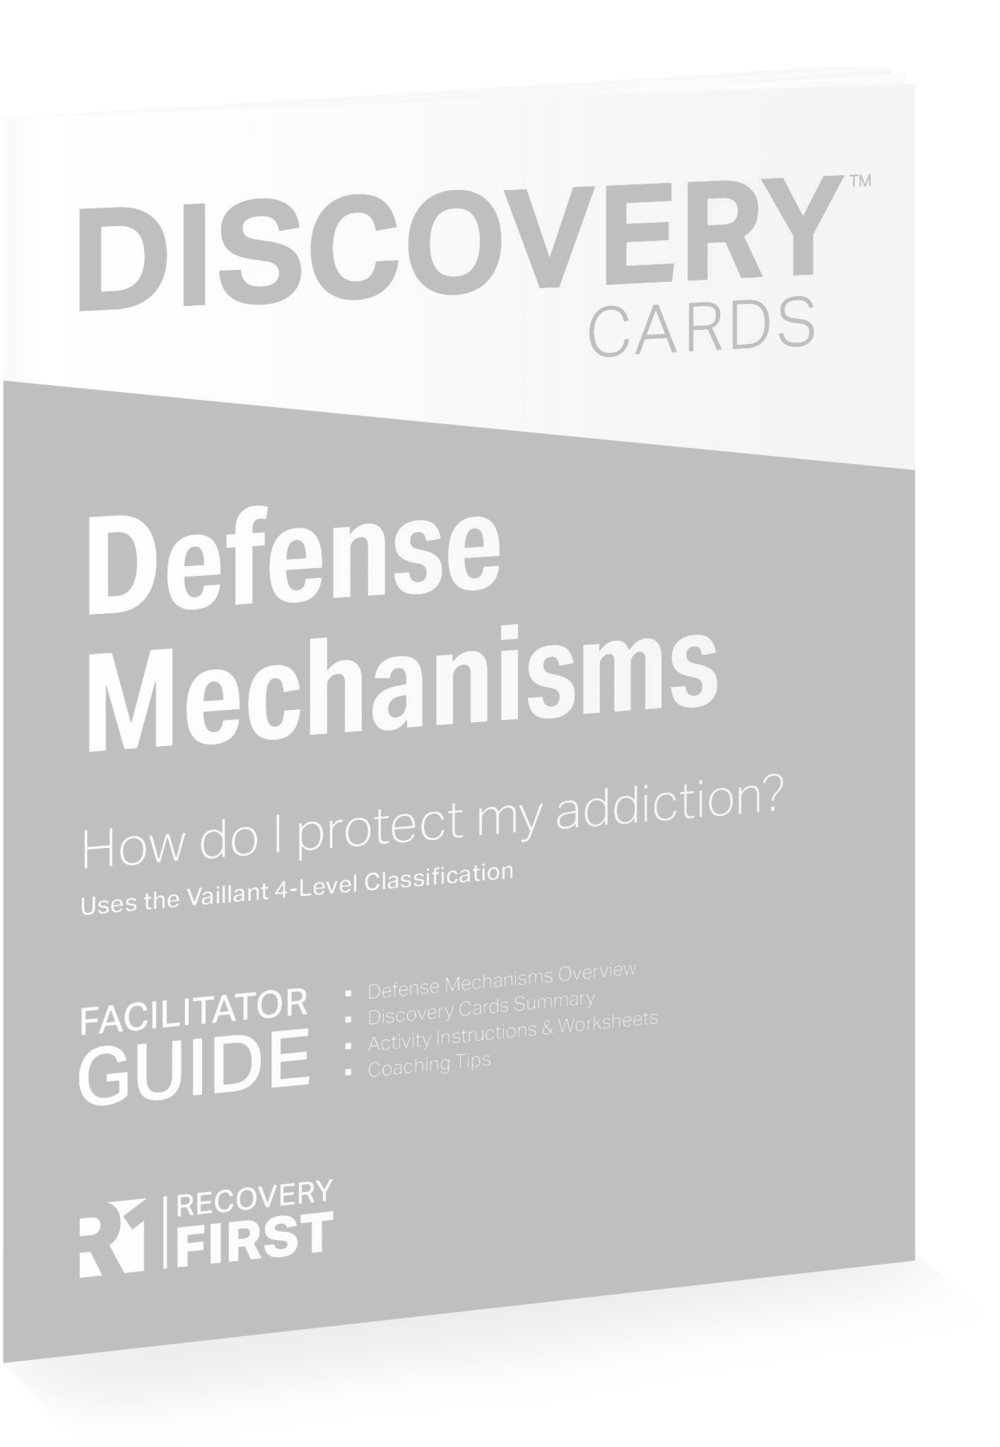 3-defensemechanisms-guide-greyed.png